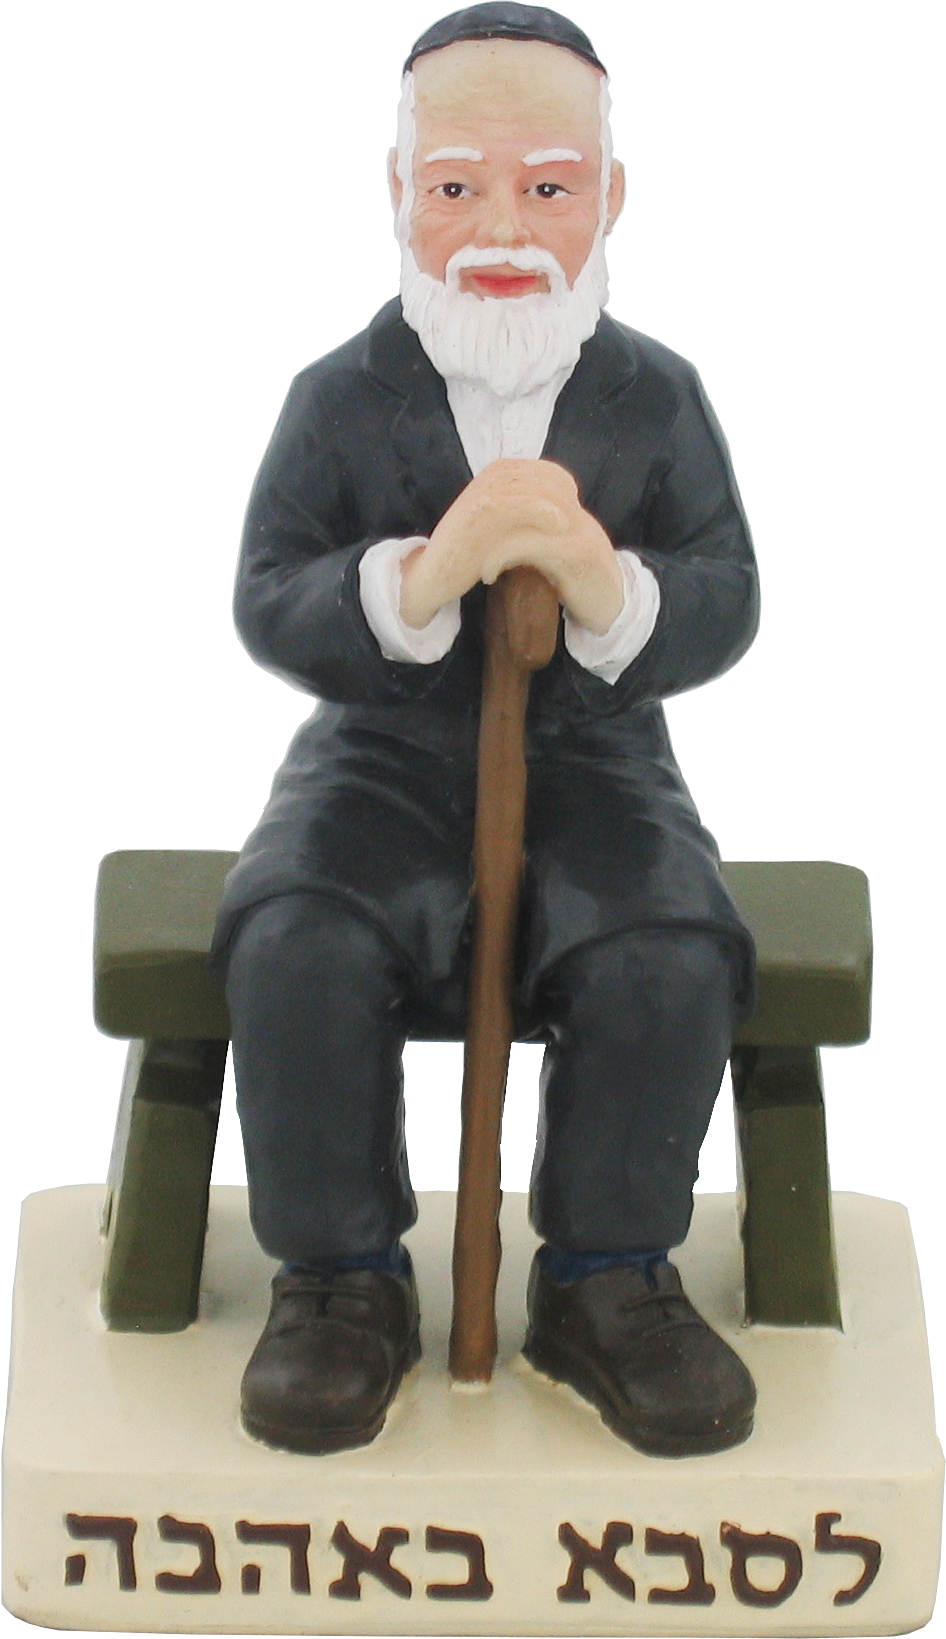 Polyresin Grandfather Sits On A Bench And Holds A Walking Stick 11 Cm - For Grandfather With Love